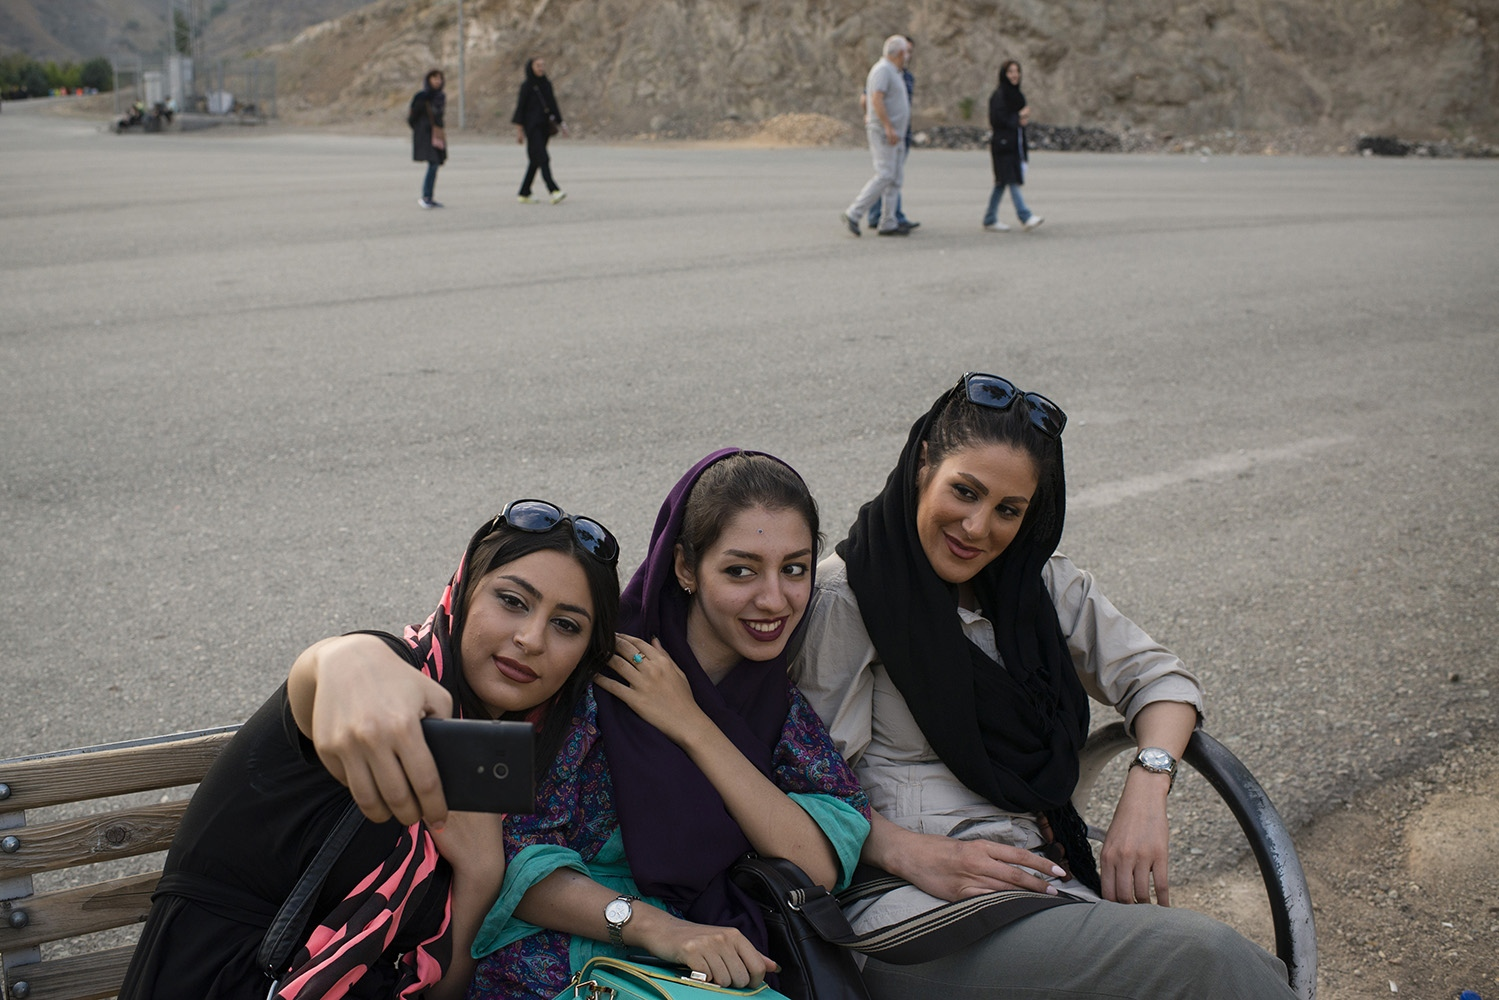 Group sex in iran 1